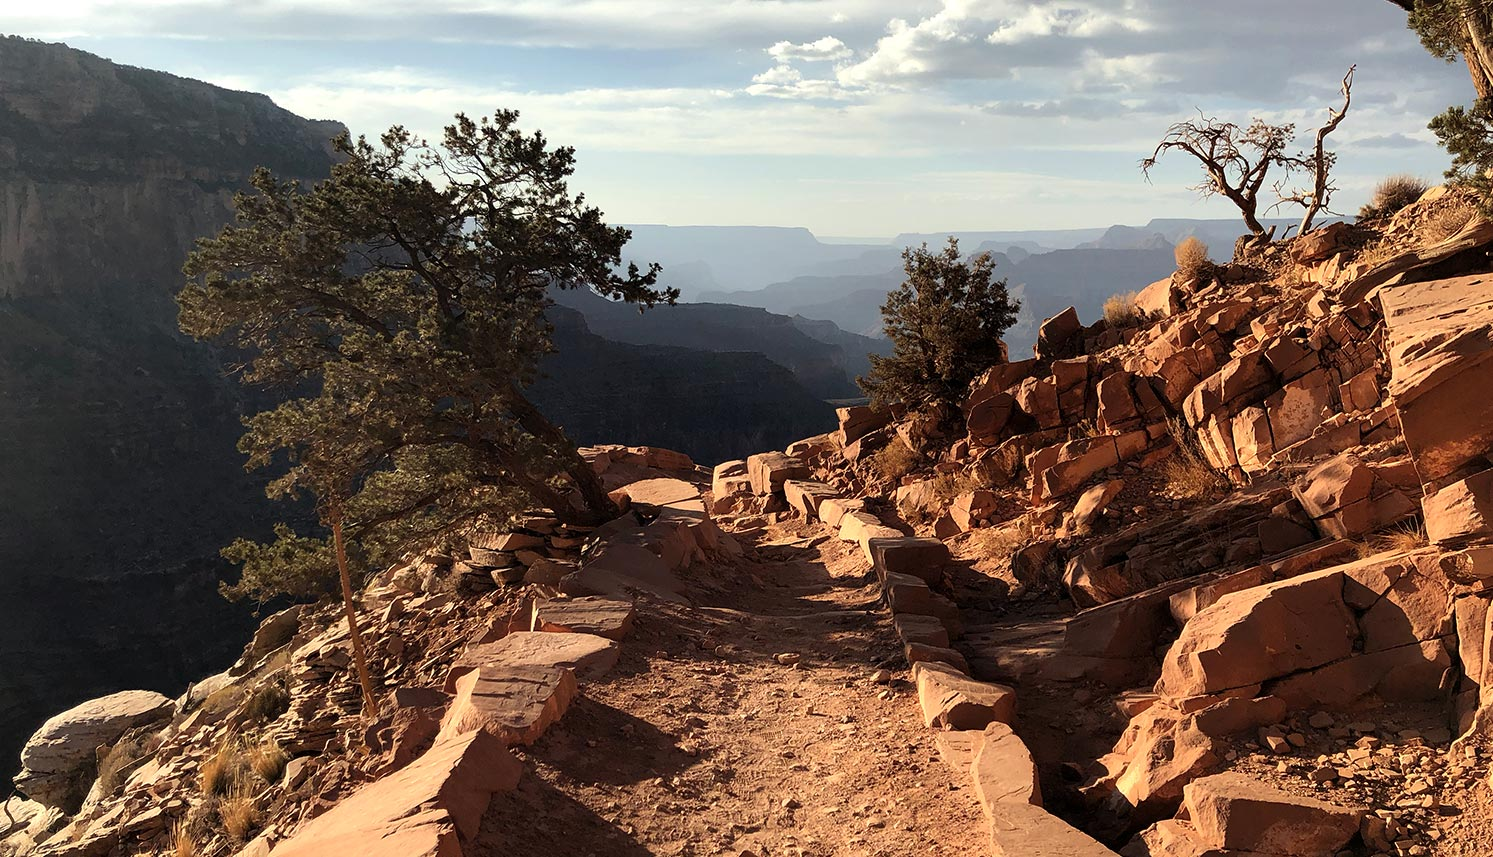 Grand Canyon AZT - Arizona Trail Wrap Up